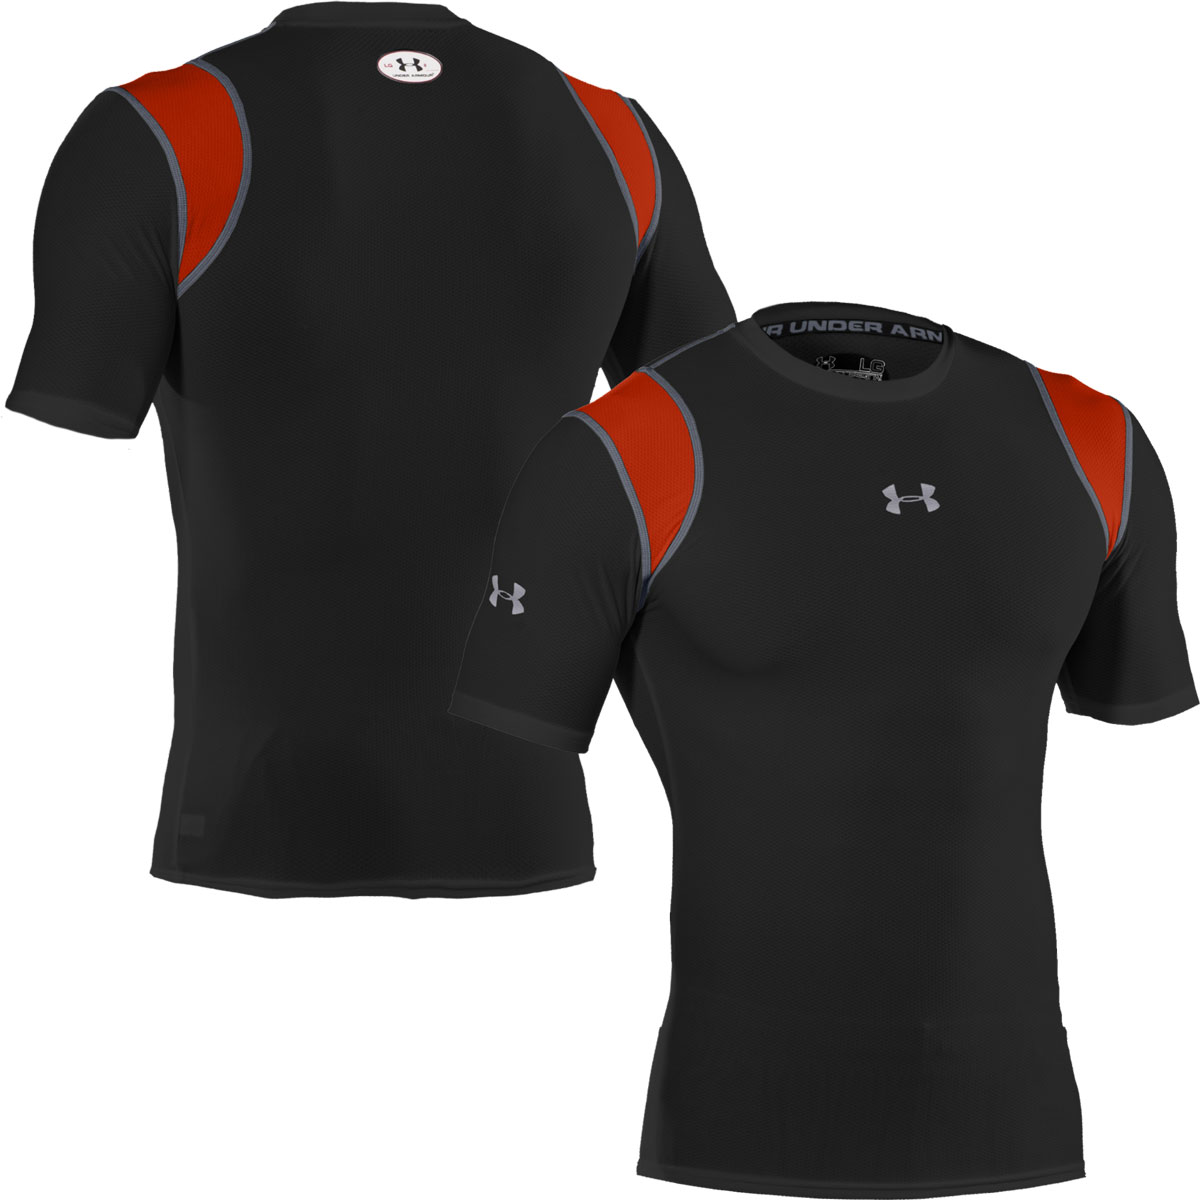 Coachbase The Best Compression Shirts For Your Players